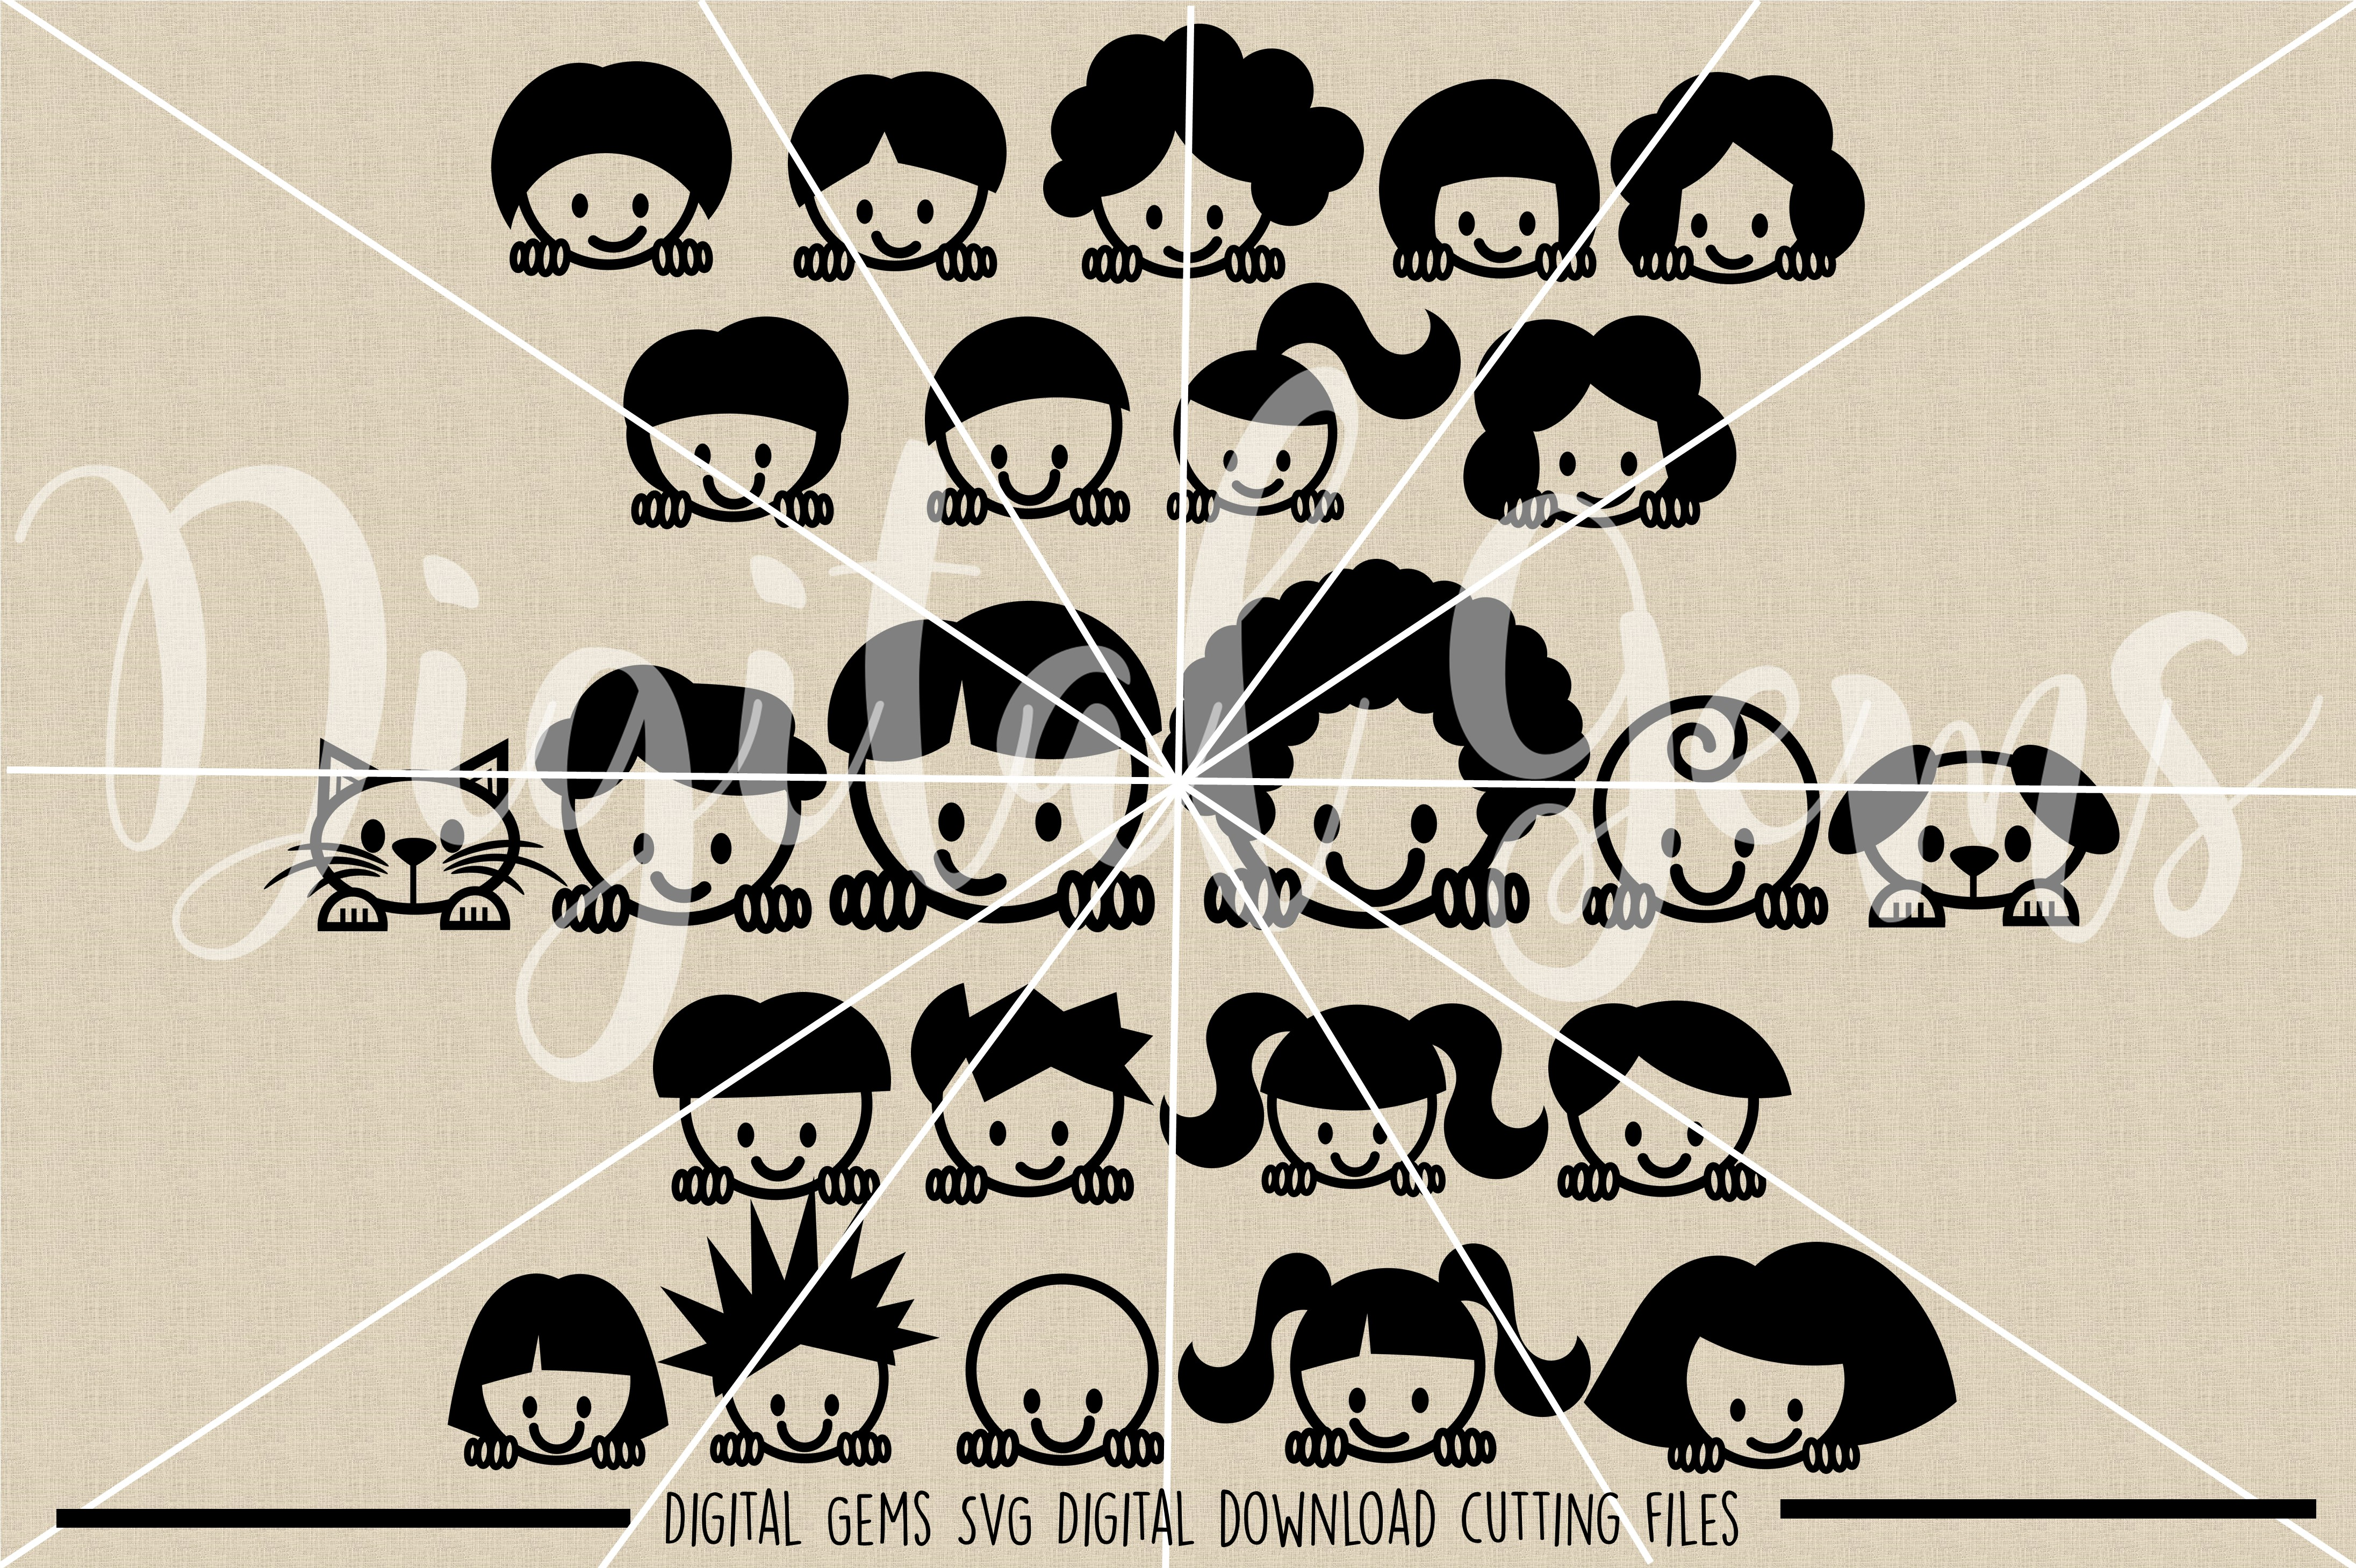 Peek a boo People SVG / DXF / EPS / PNG Files example image 2